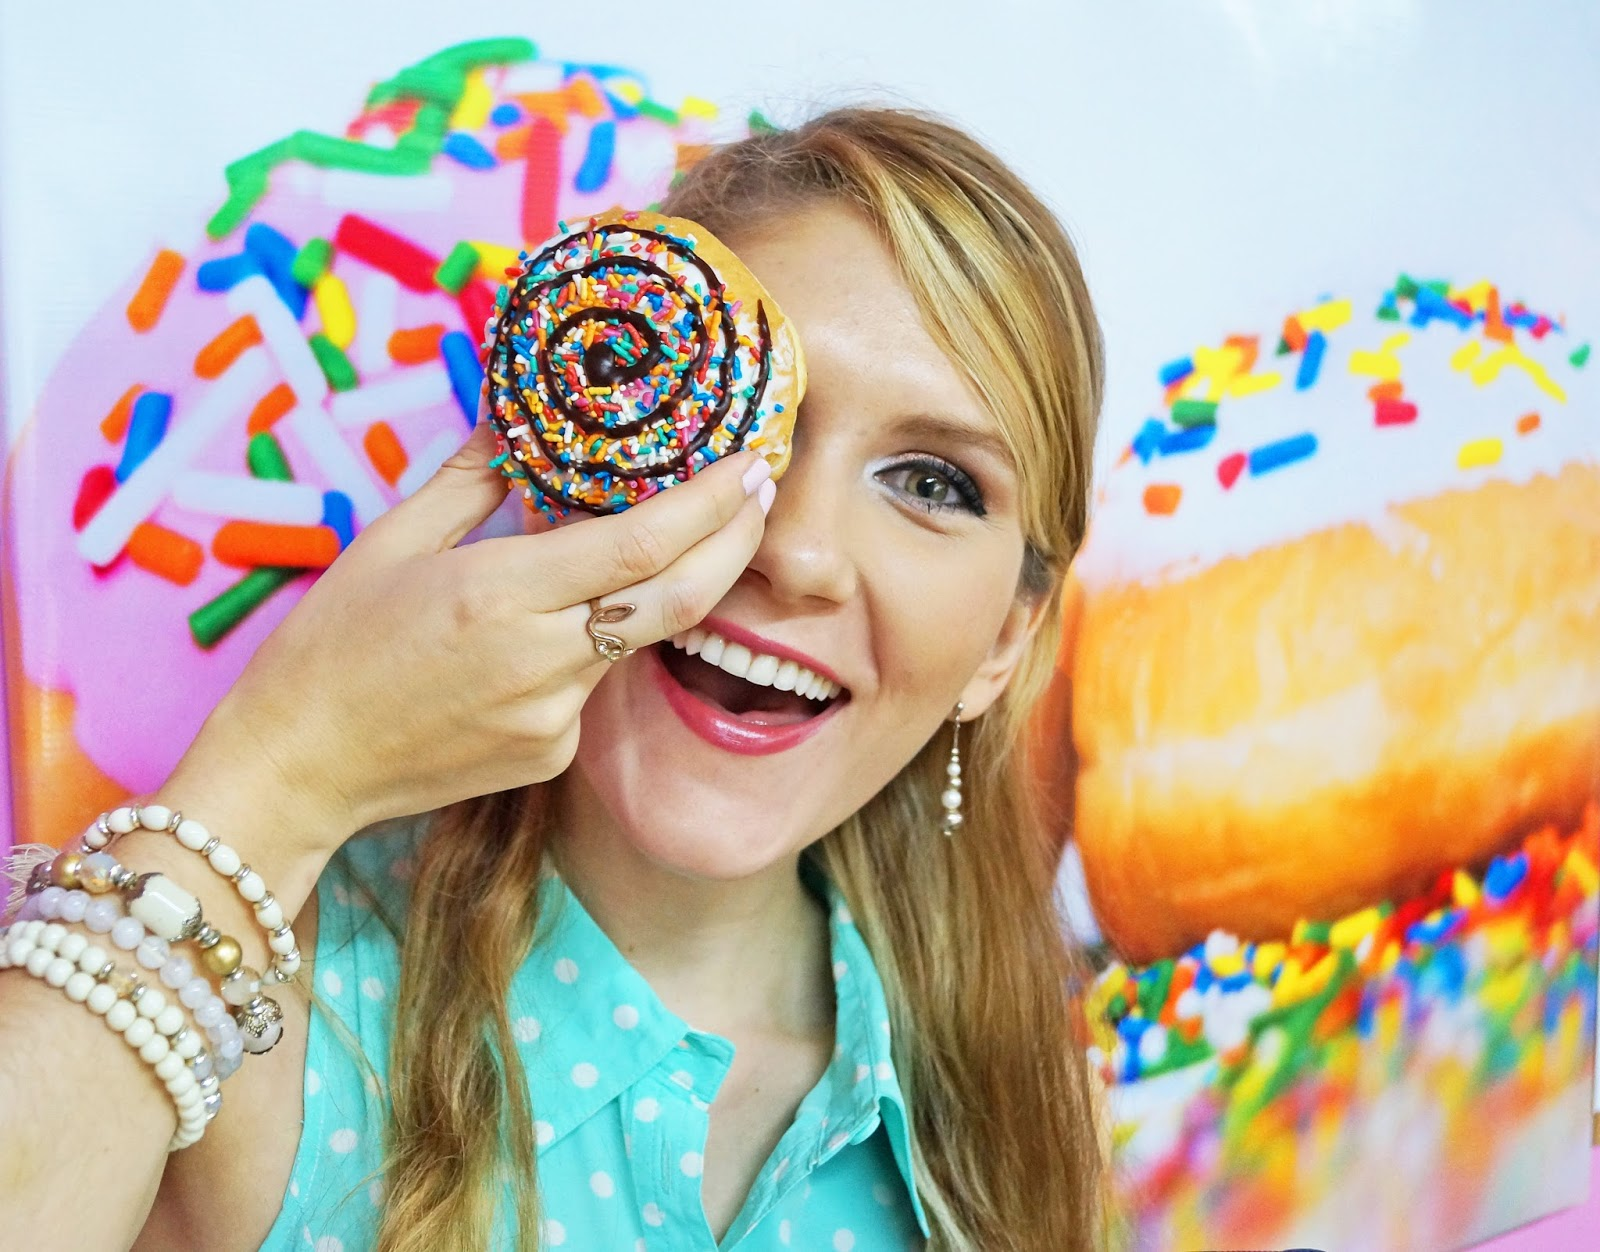 Doughnuts are the secret to Happiness!